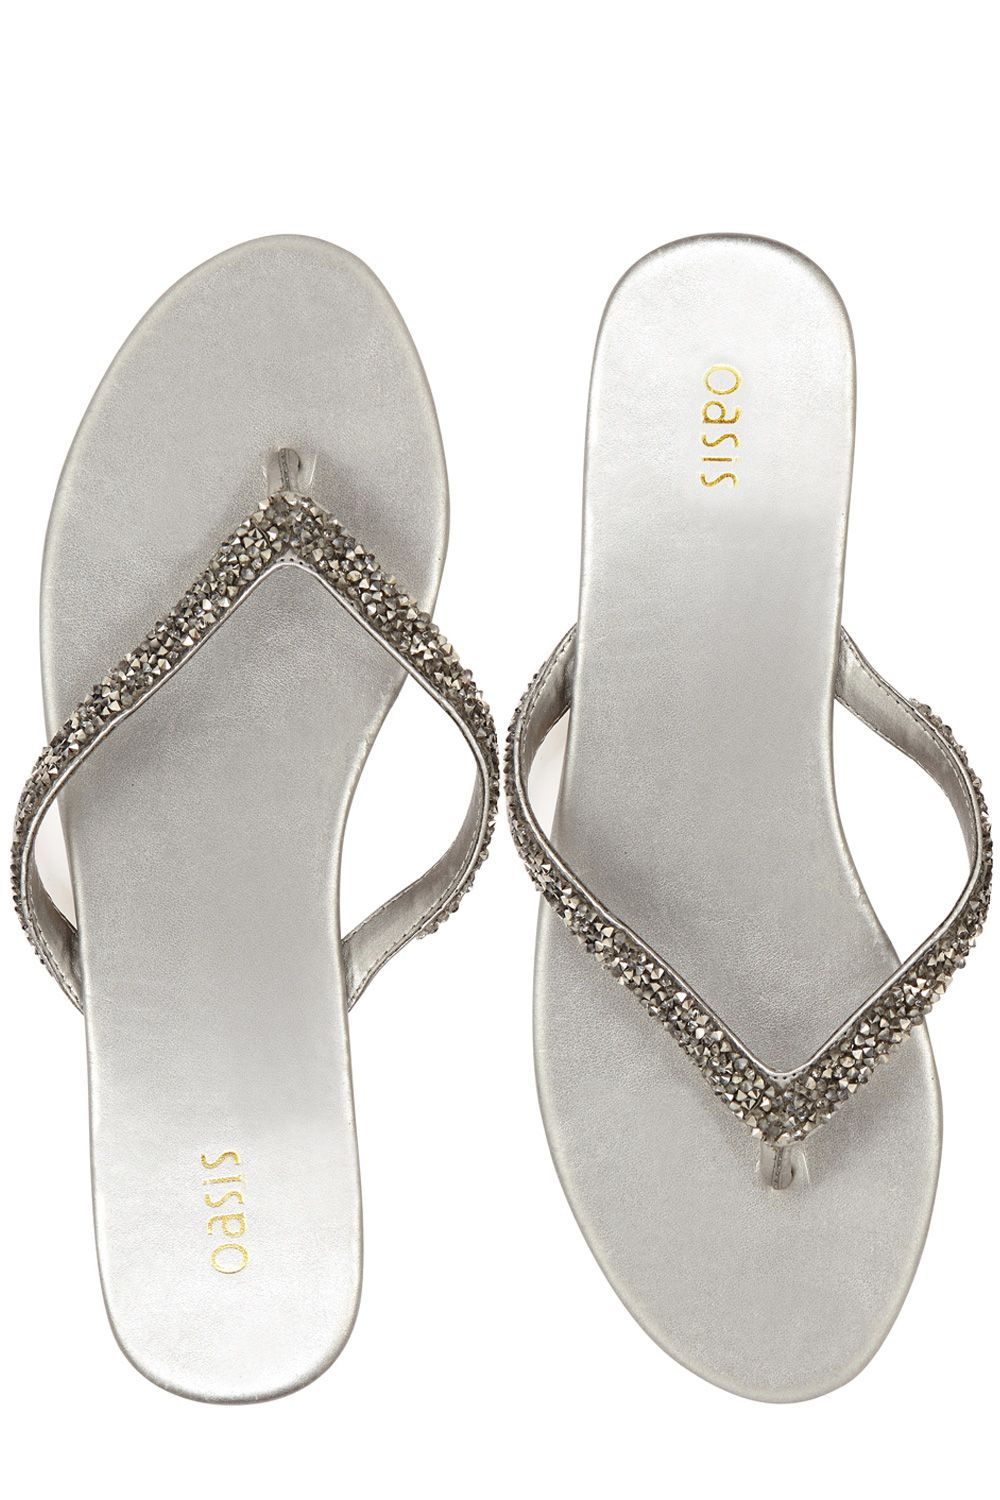 Beaded toe post sandals